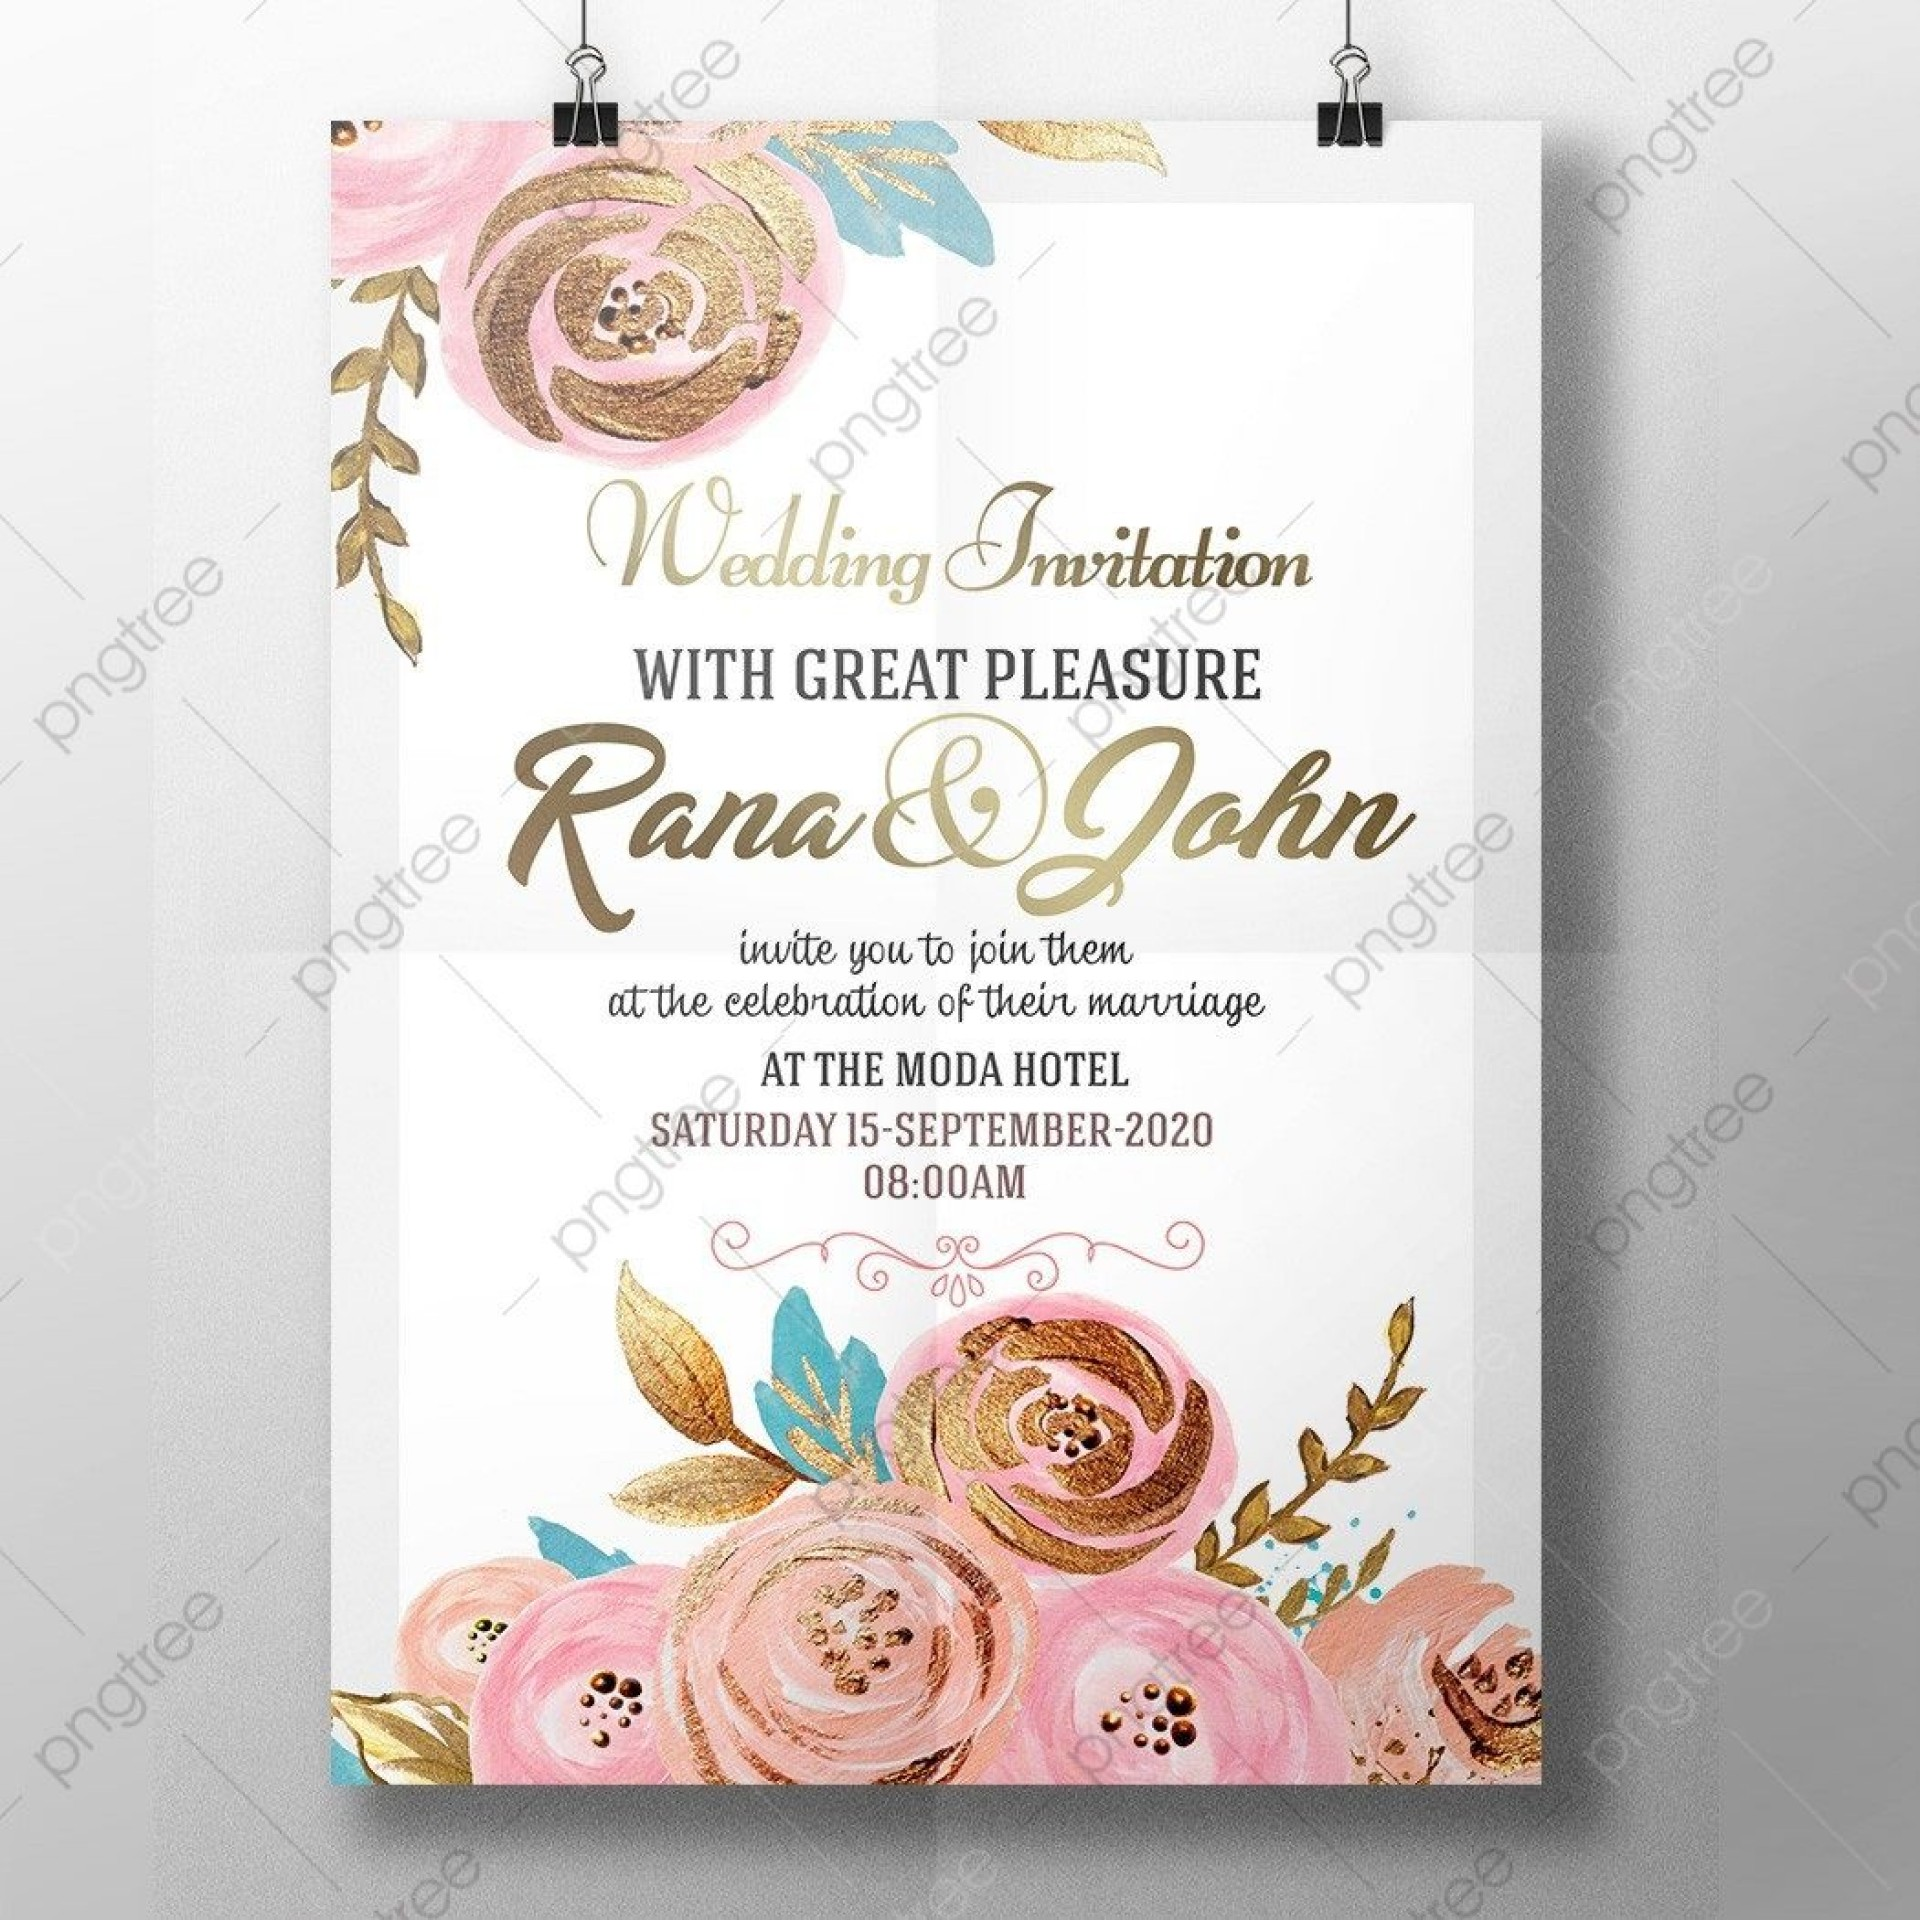 005 Stupendou Free Download Wedding Invitation Template Highest Clarity  Marathi Video Maker Software Editable Rustic For Word1920